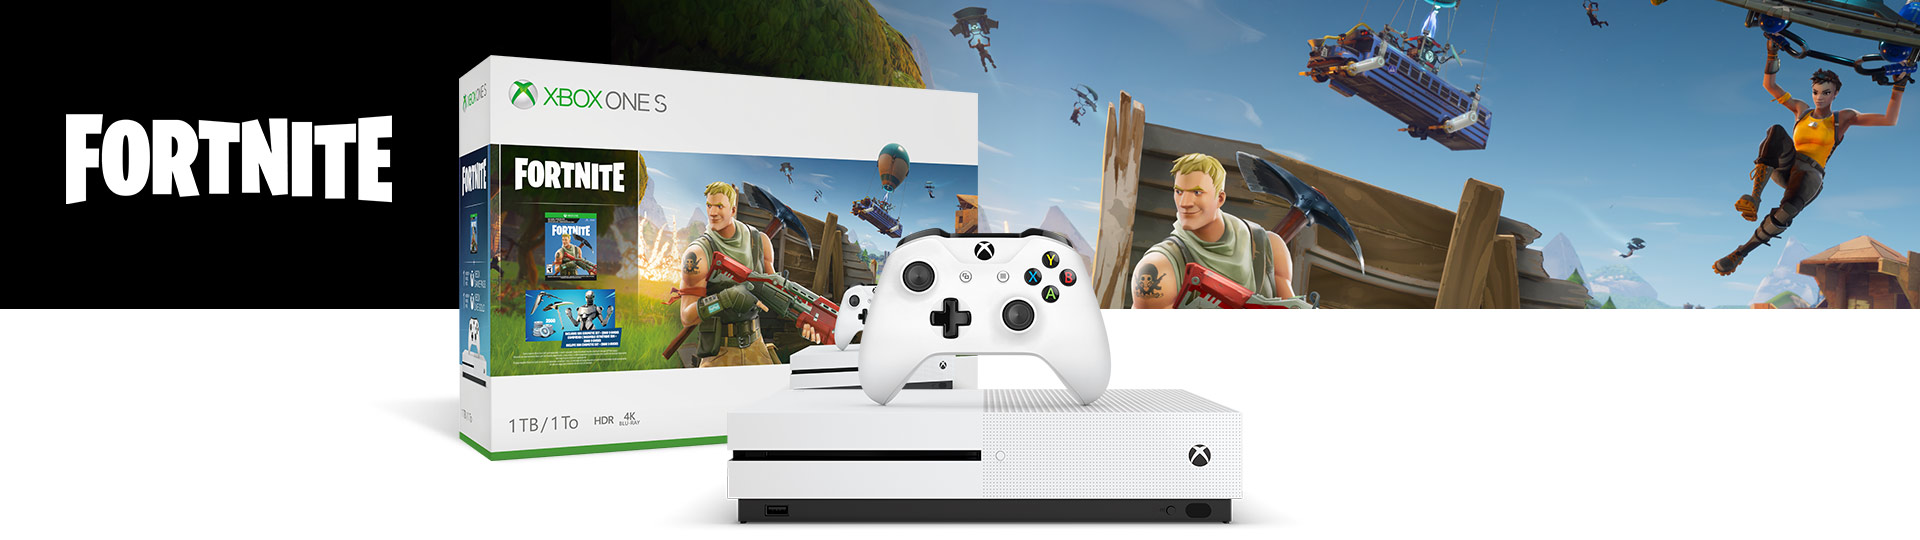 Front view of Xbox One S Fortnite Bundle with product box